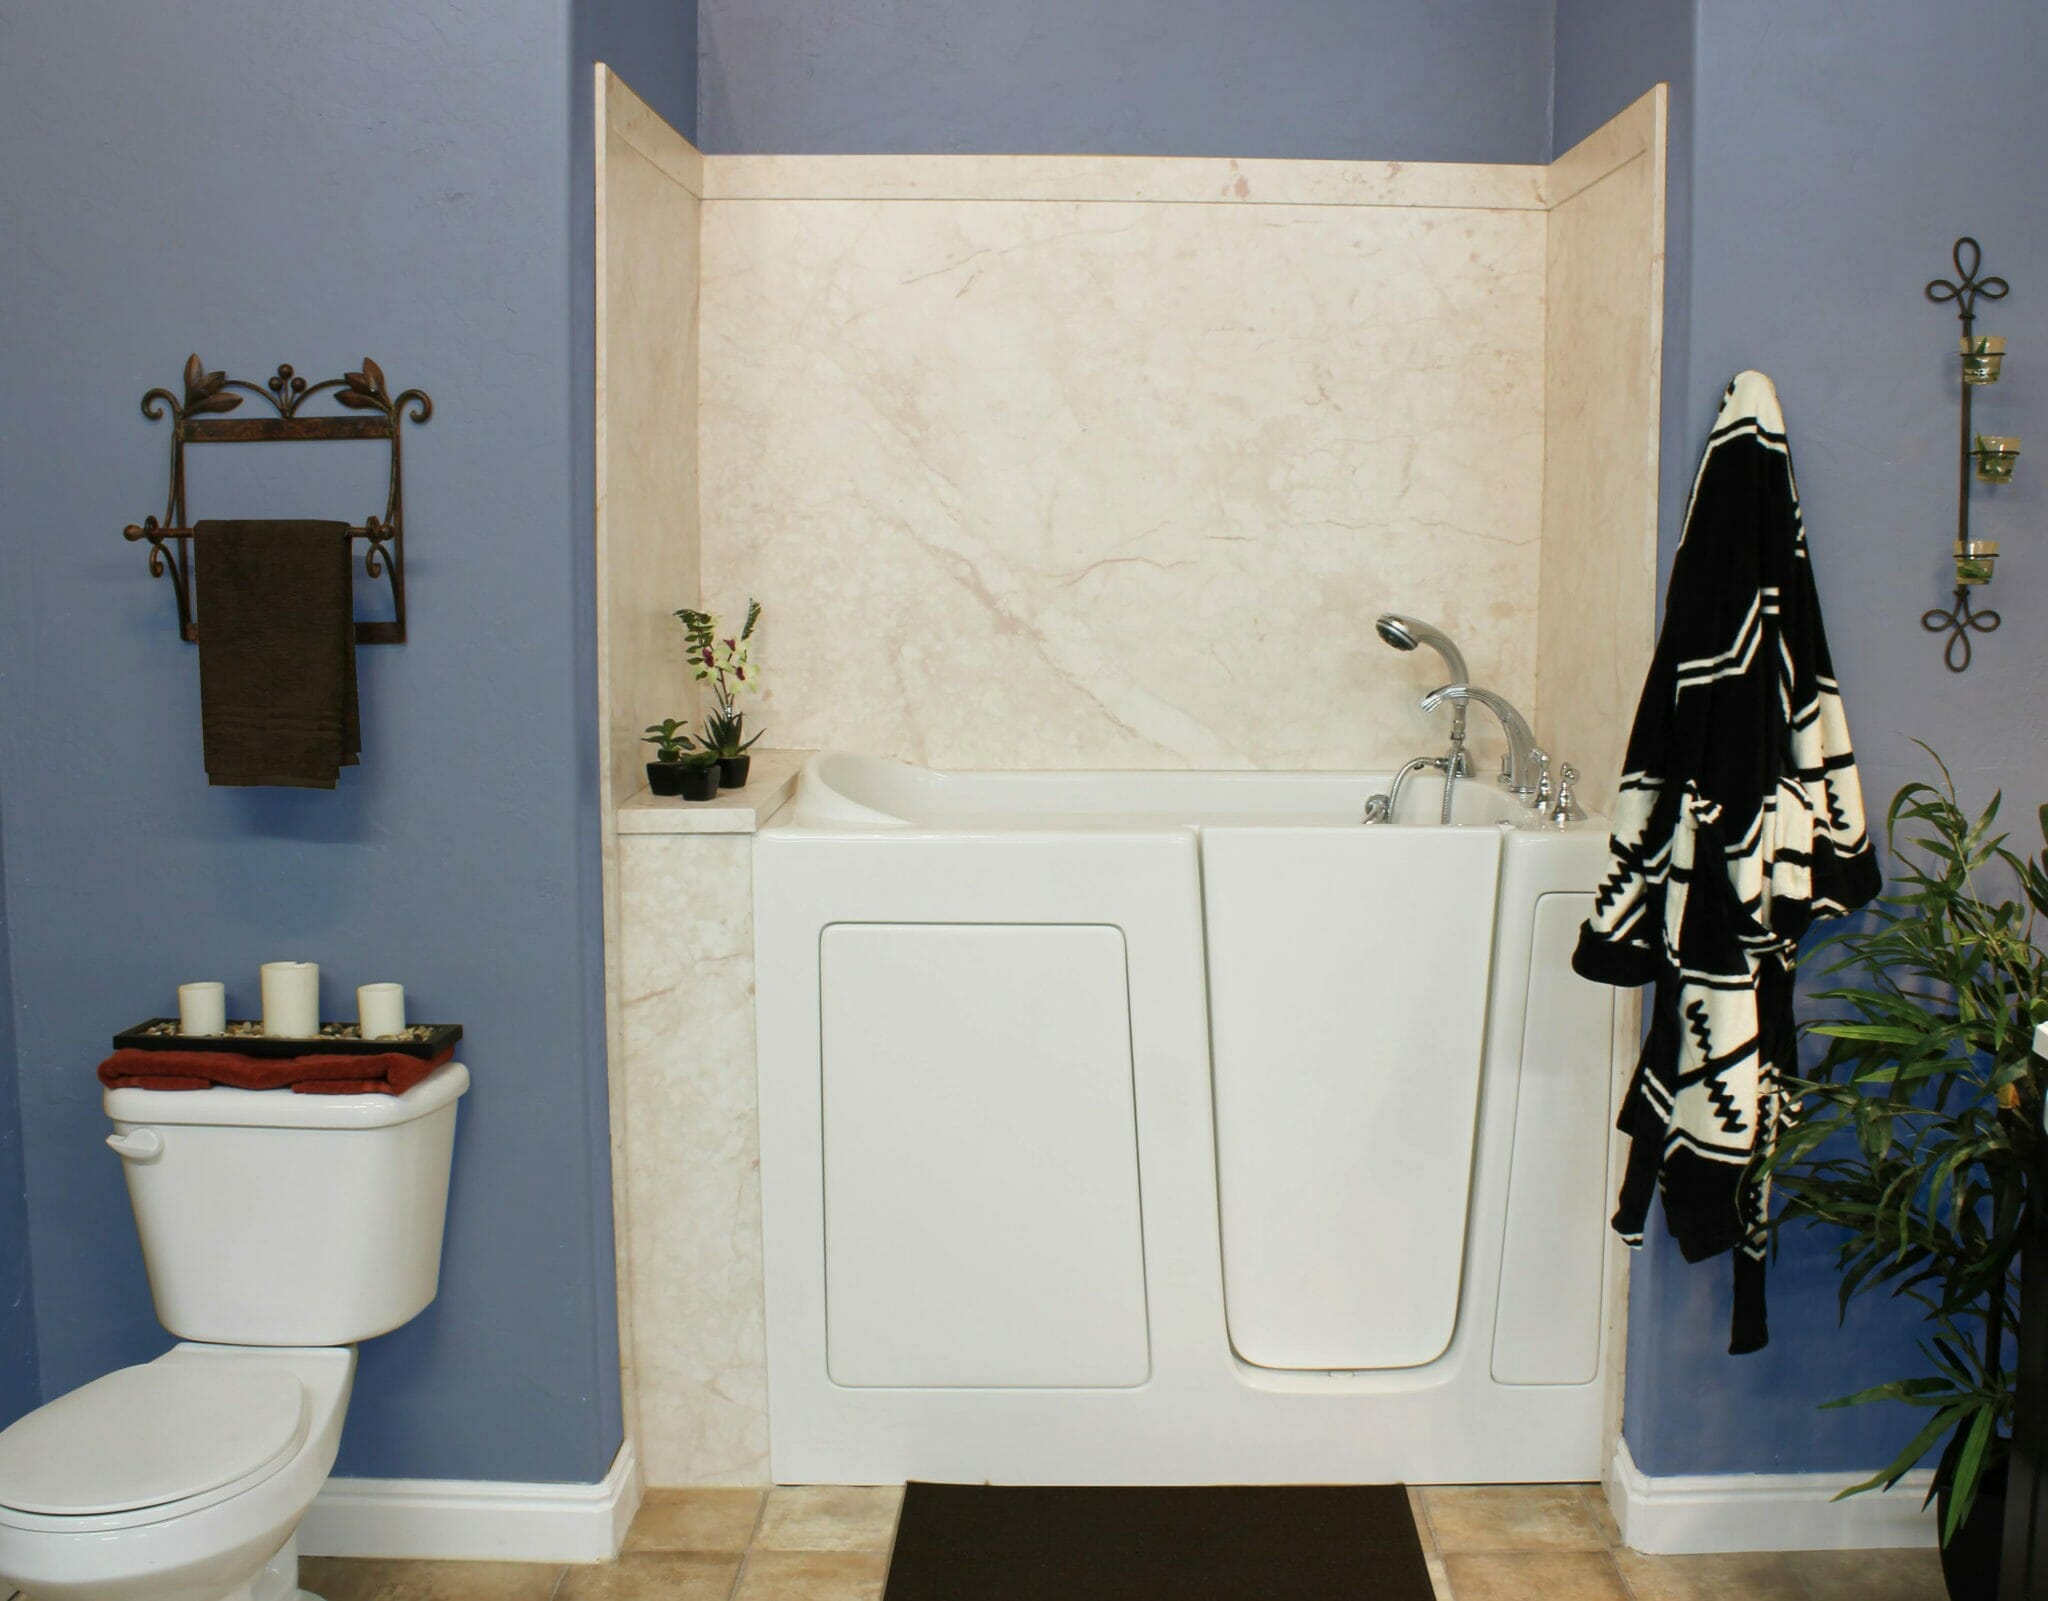 walk-in tub for Beaumont, AB